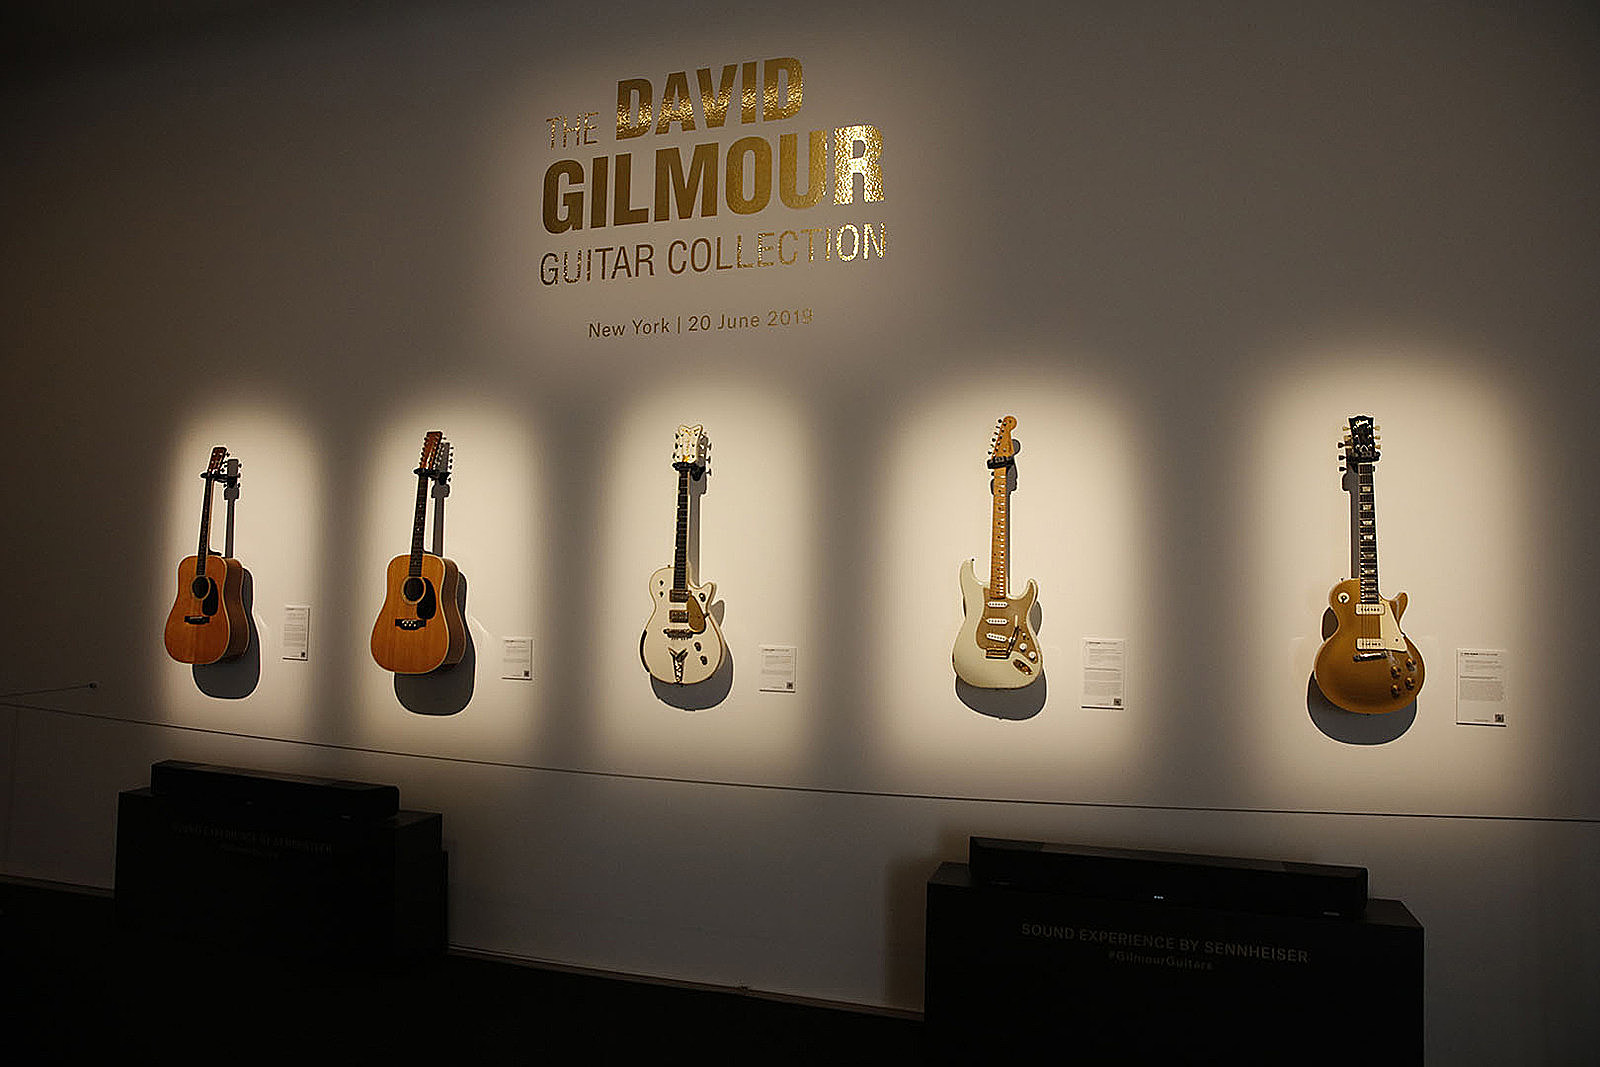 David Gilmour's Guitar Collection Sells for $21 Million